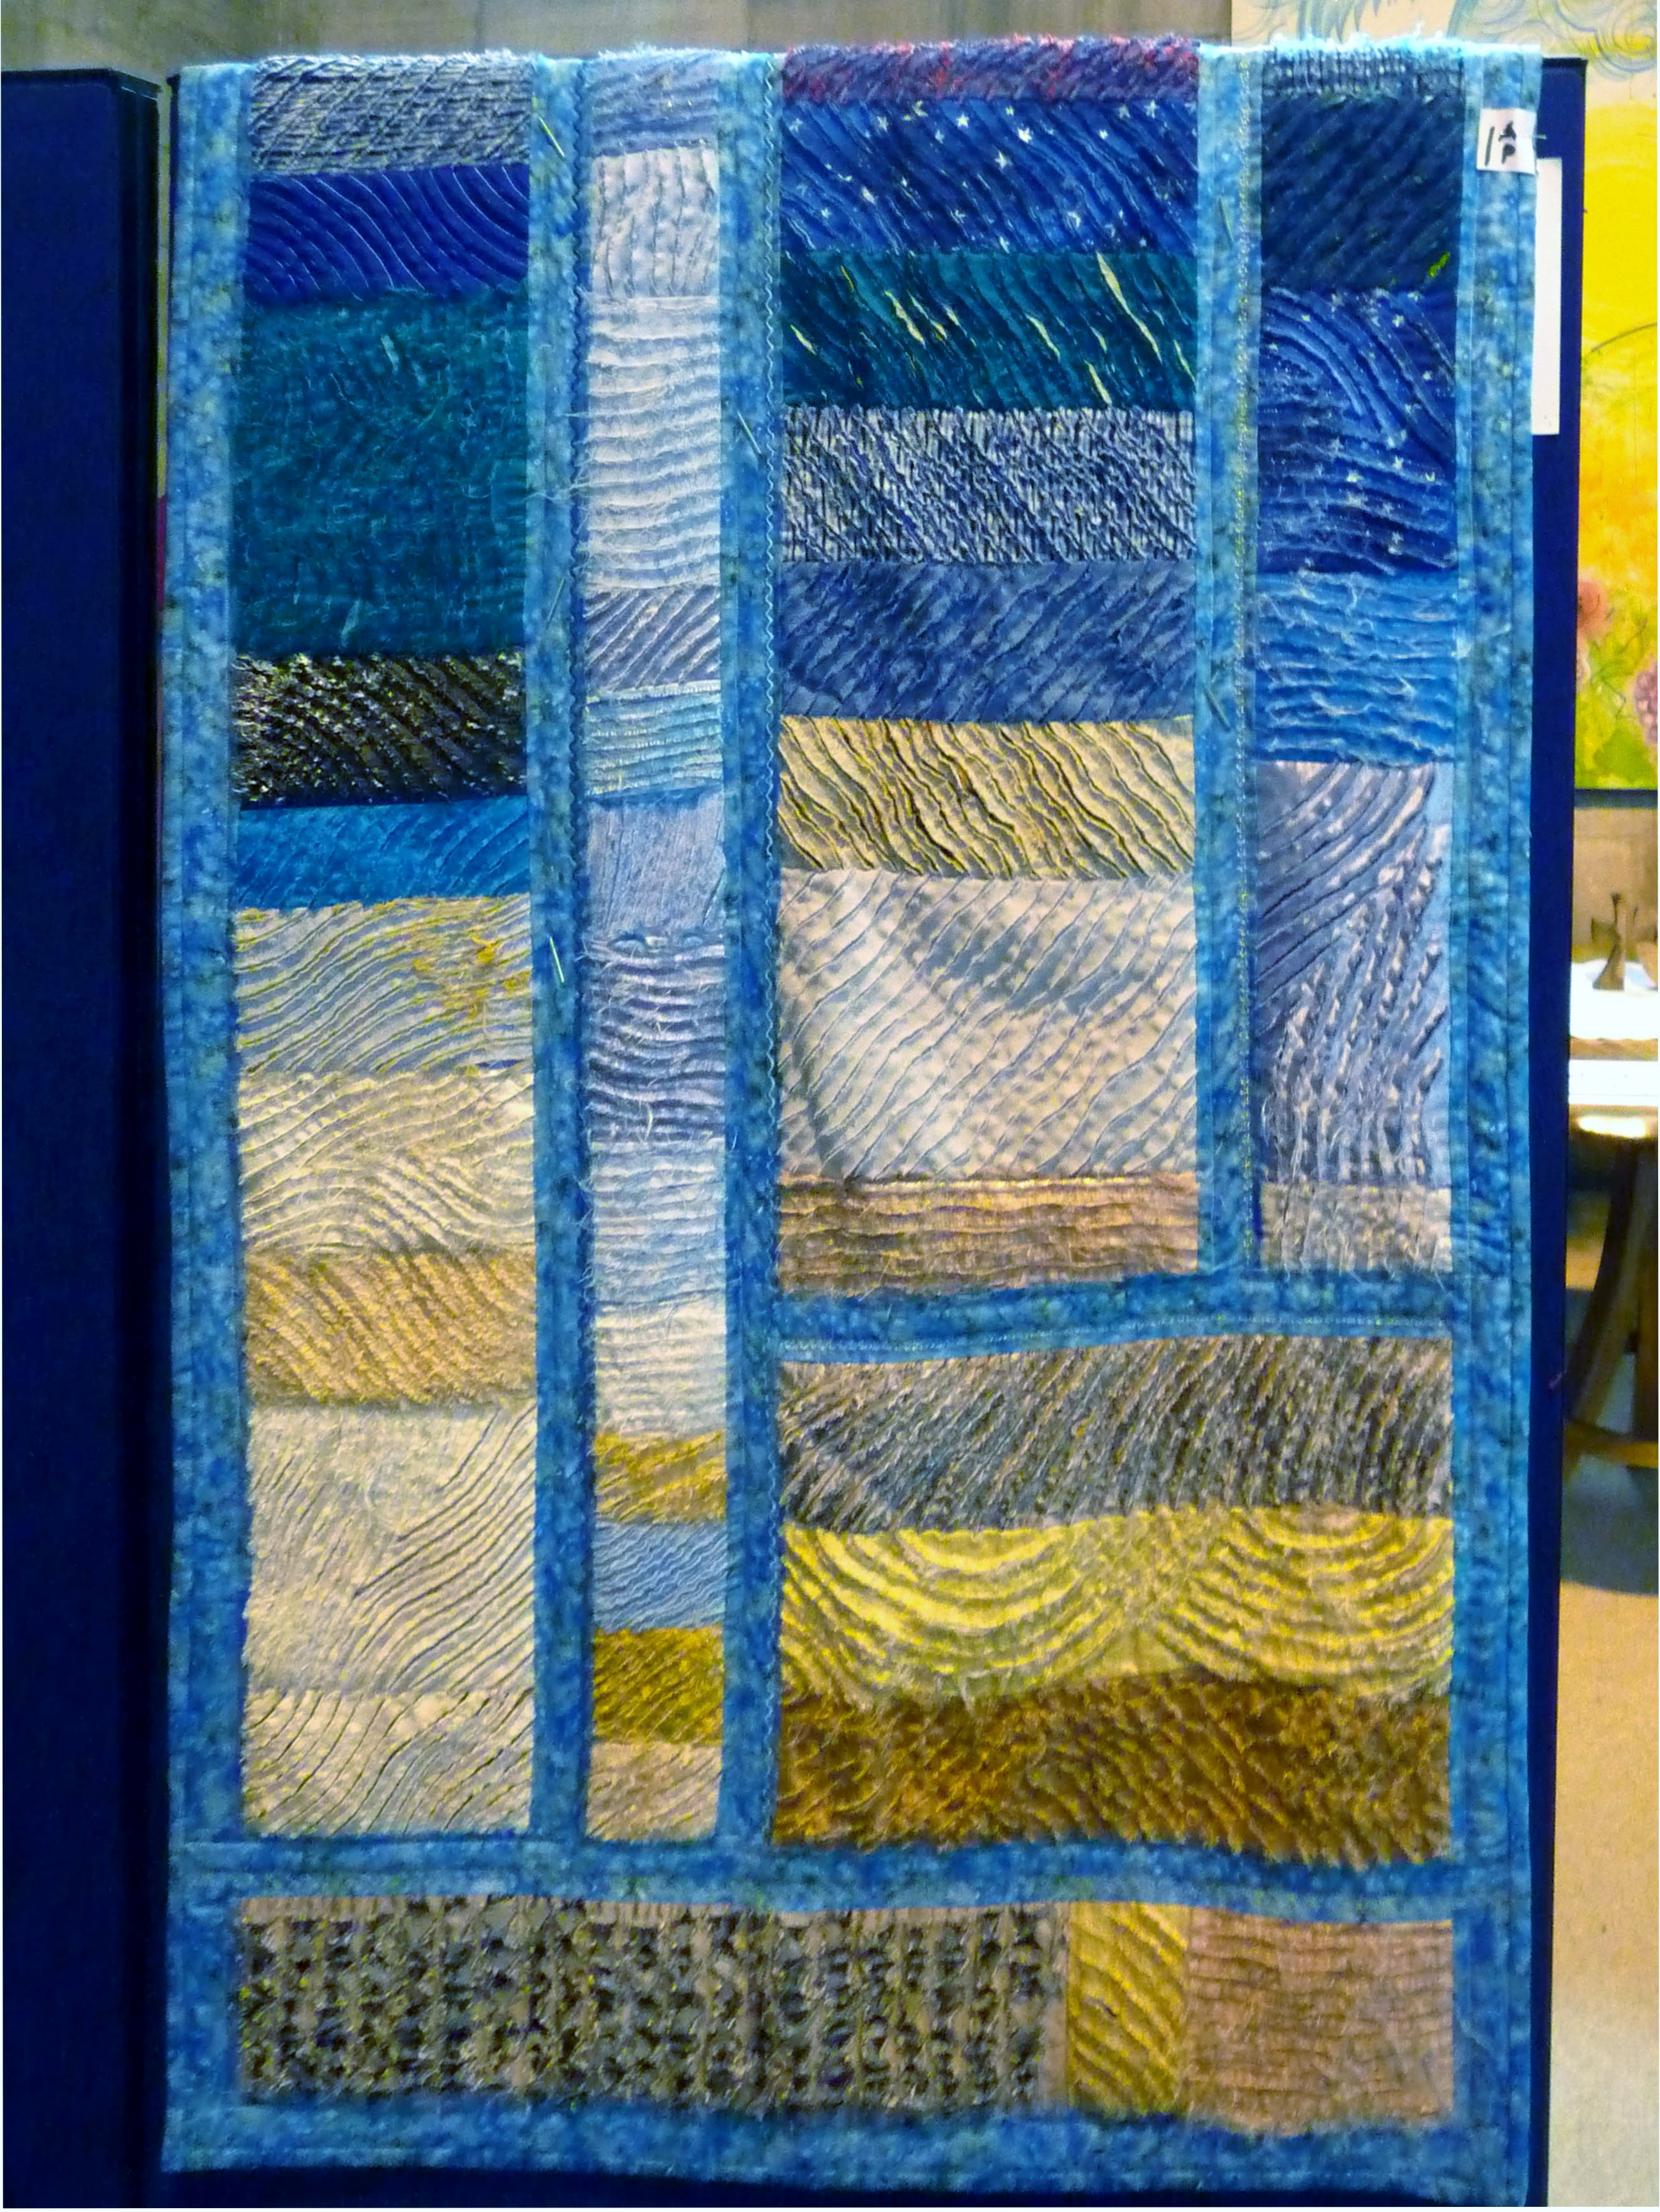 Chenille quilt made by Norma Heron, Allerton Piecemakers Group